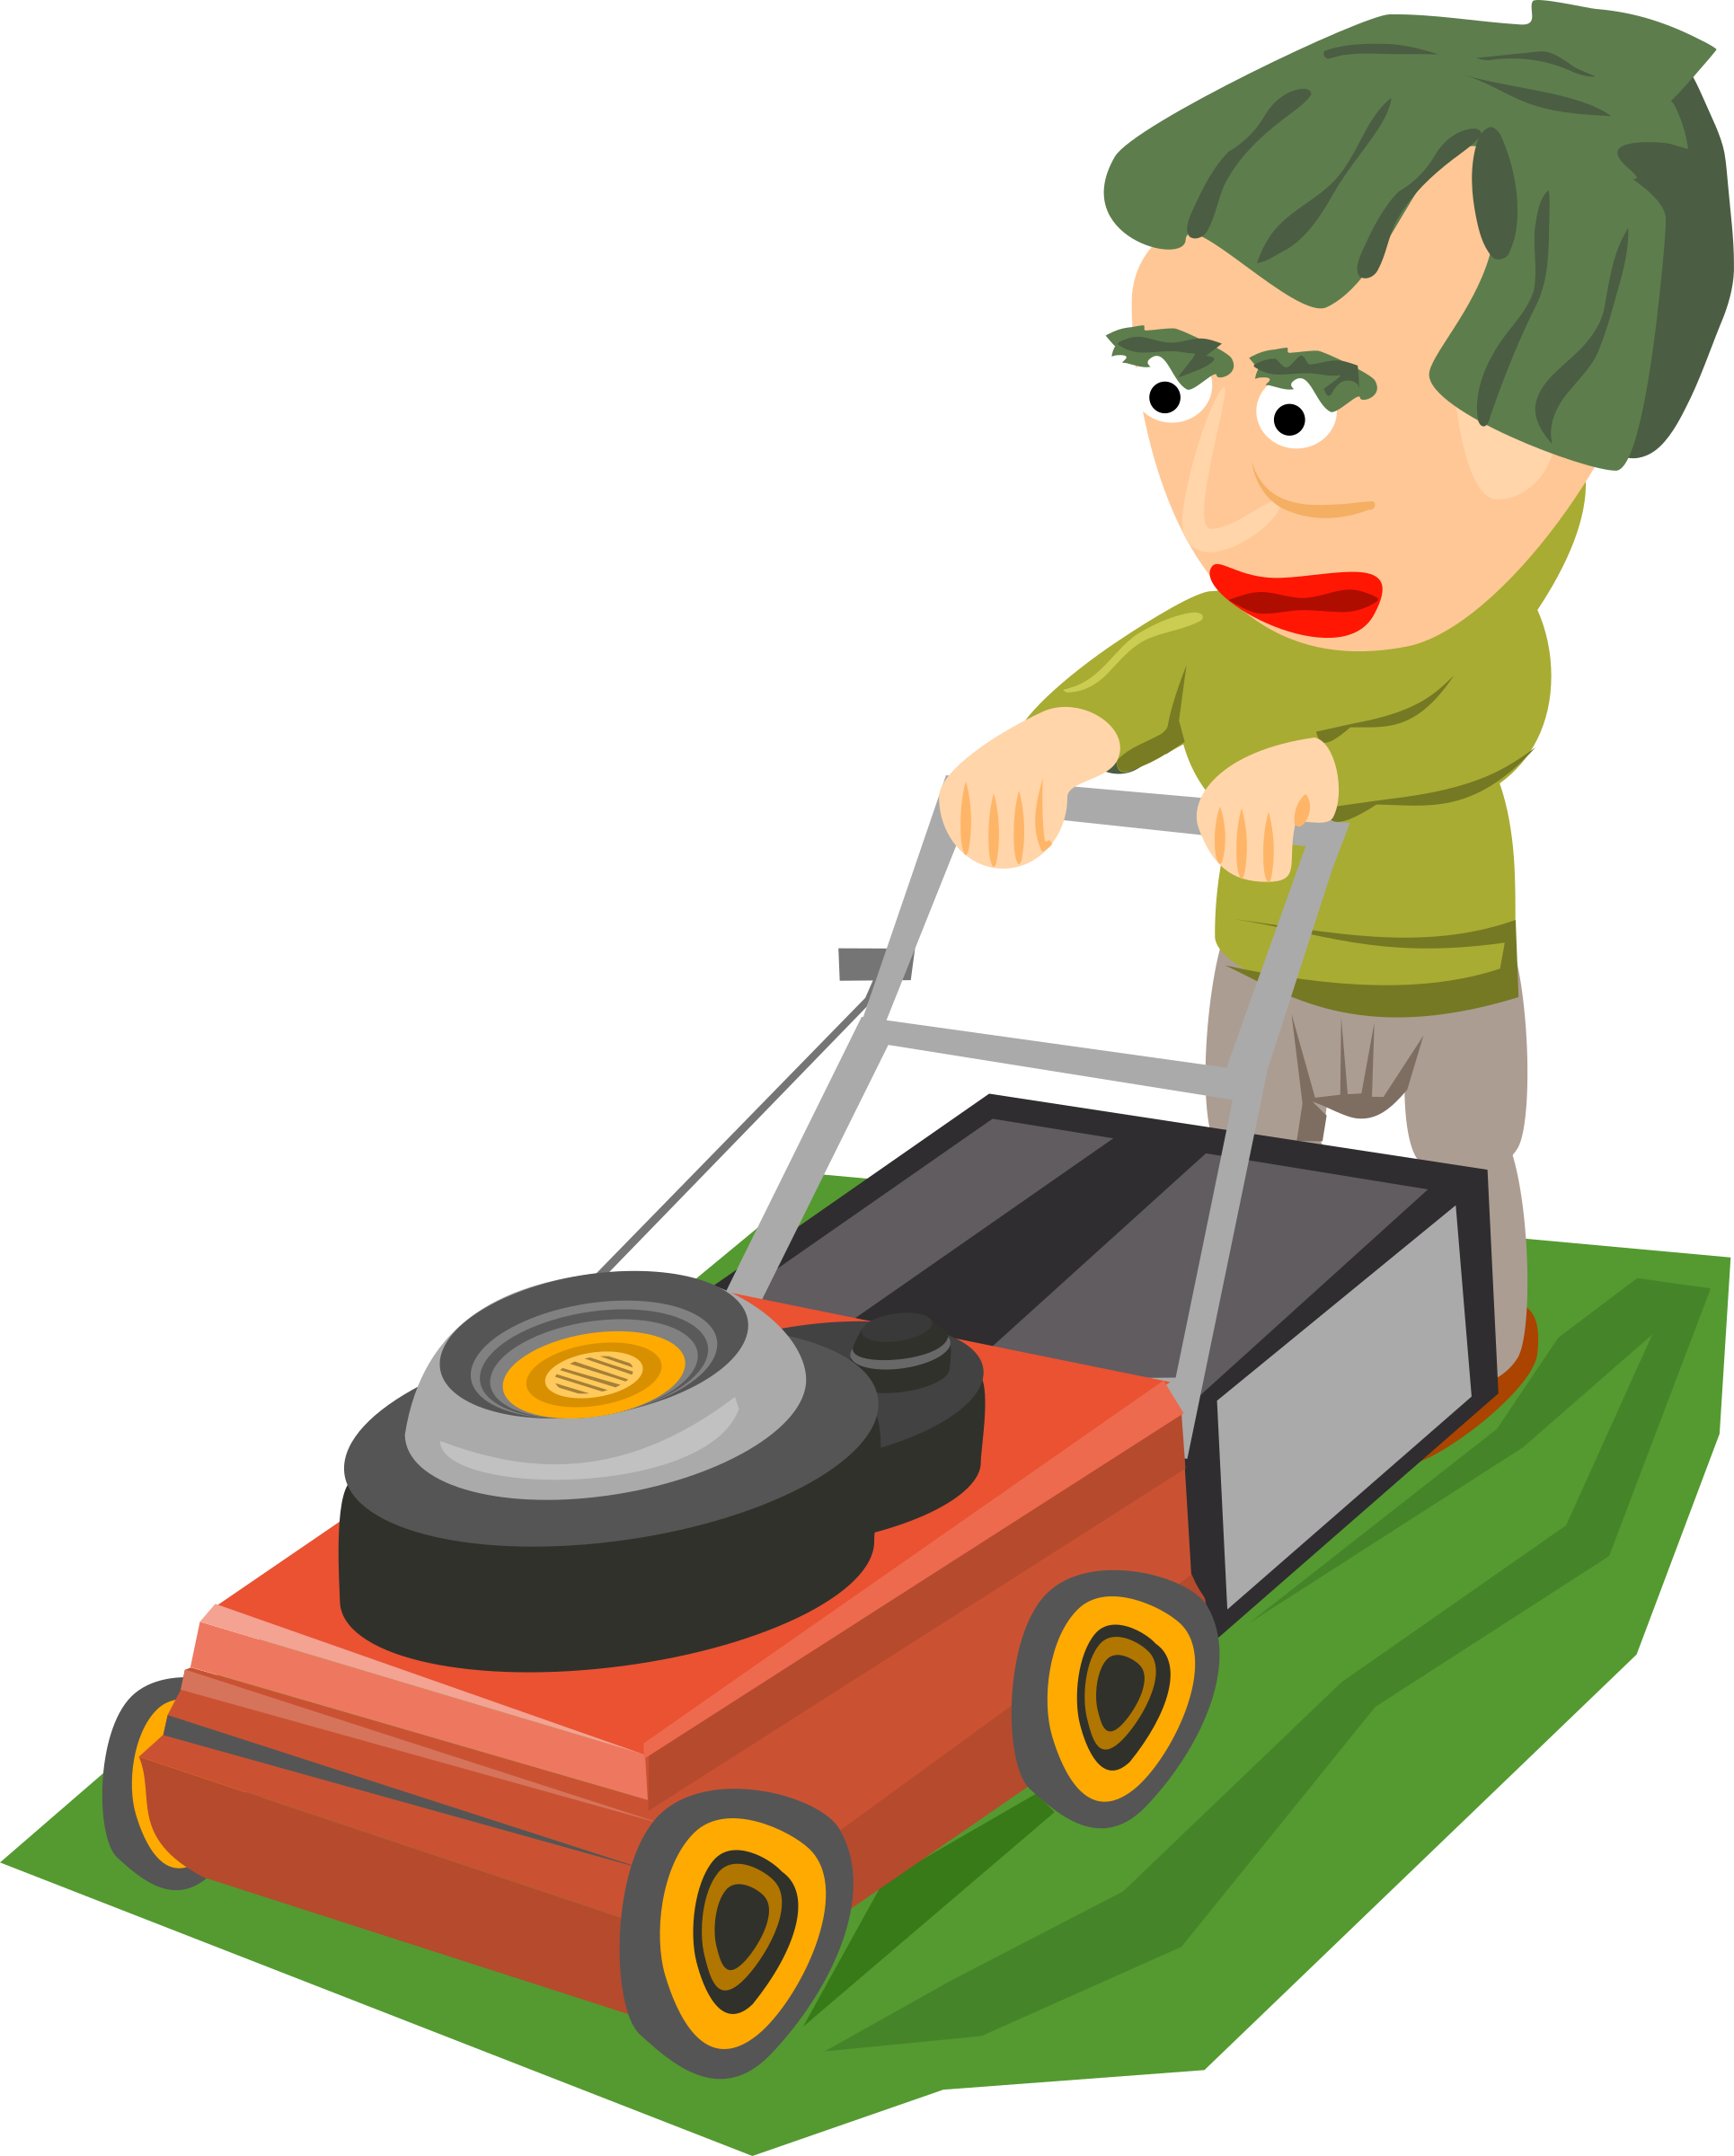 svg royalty free download Mowing clipart. The lawn big image